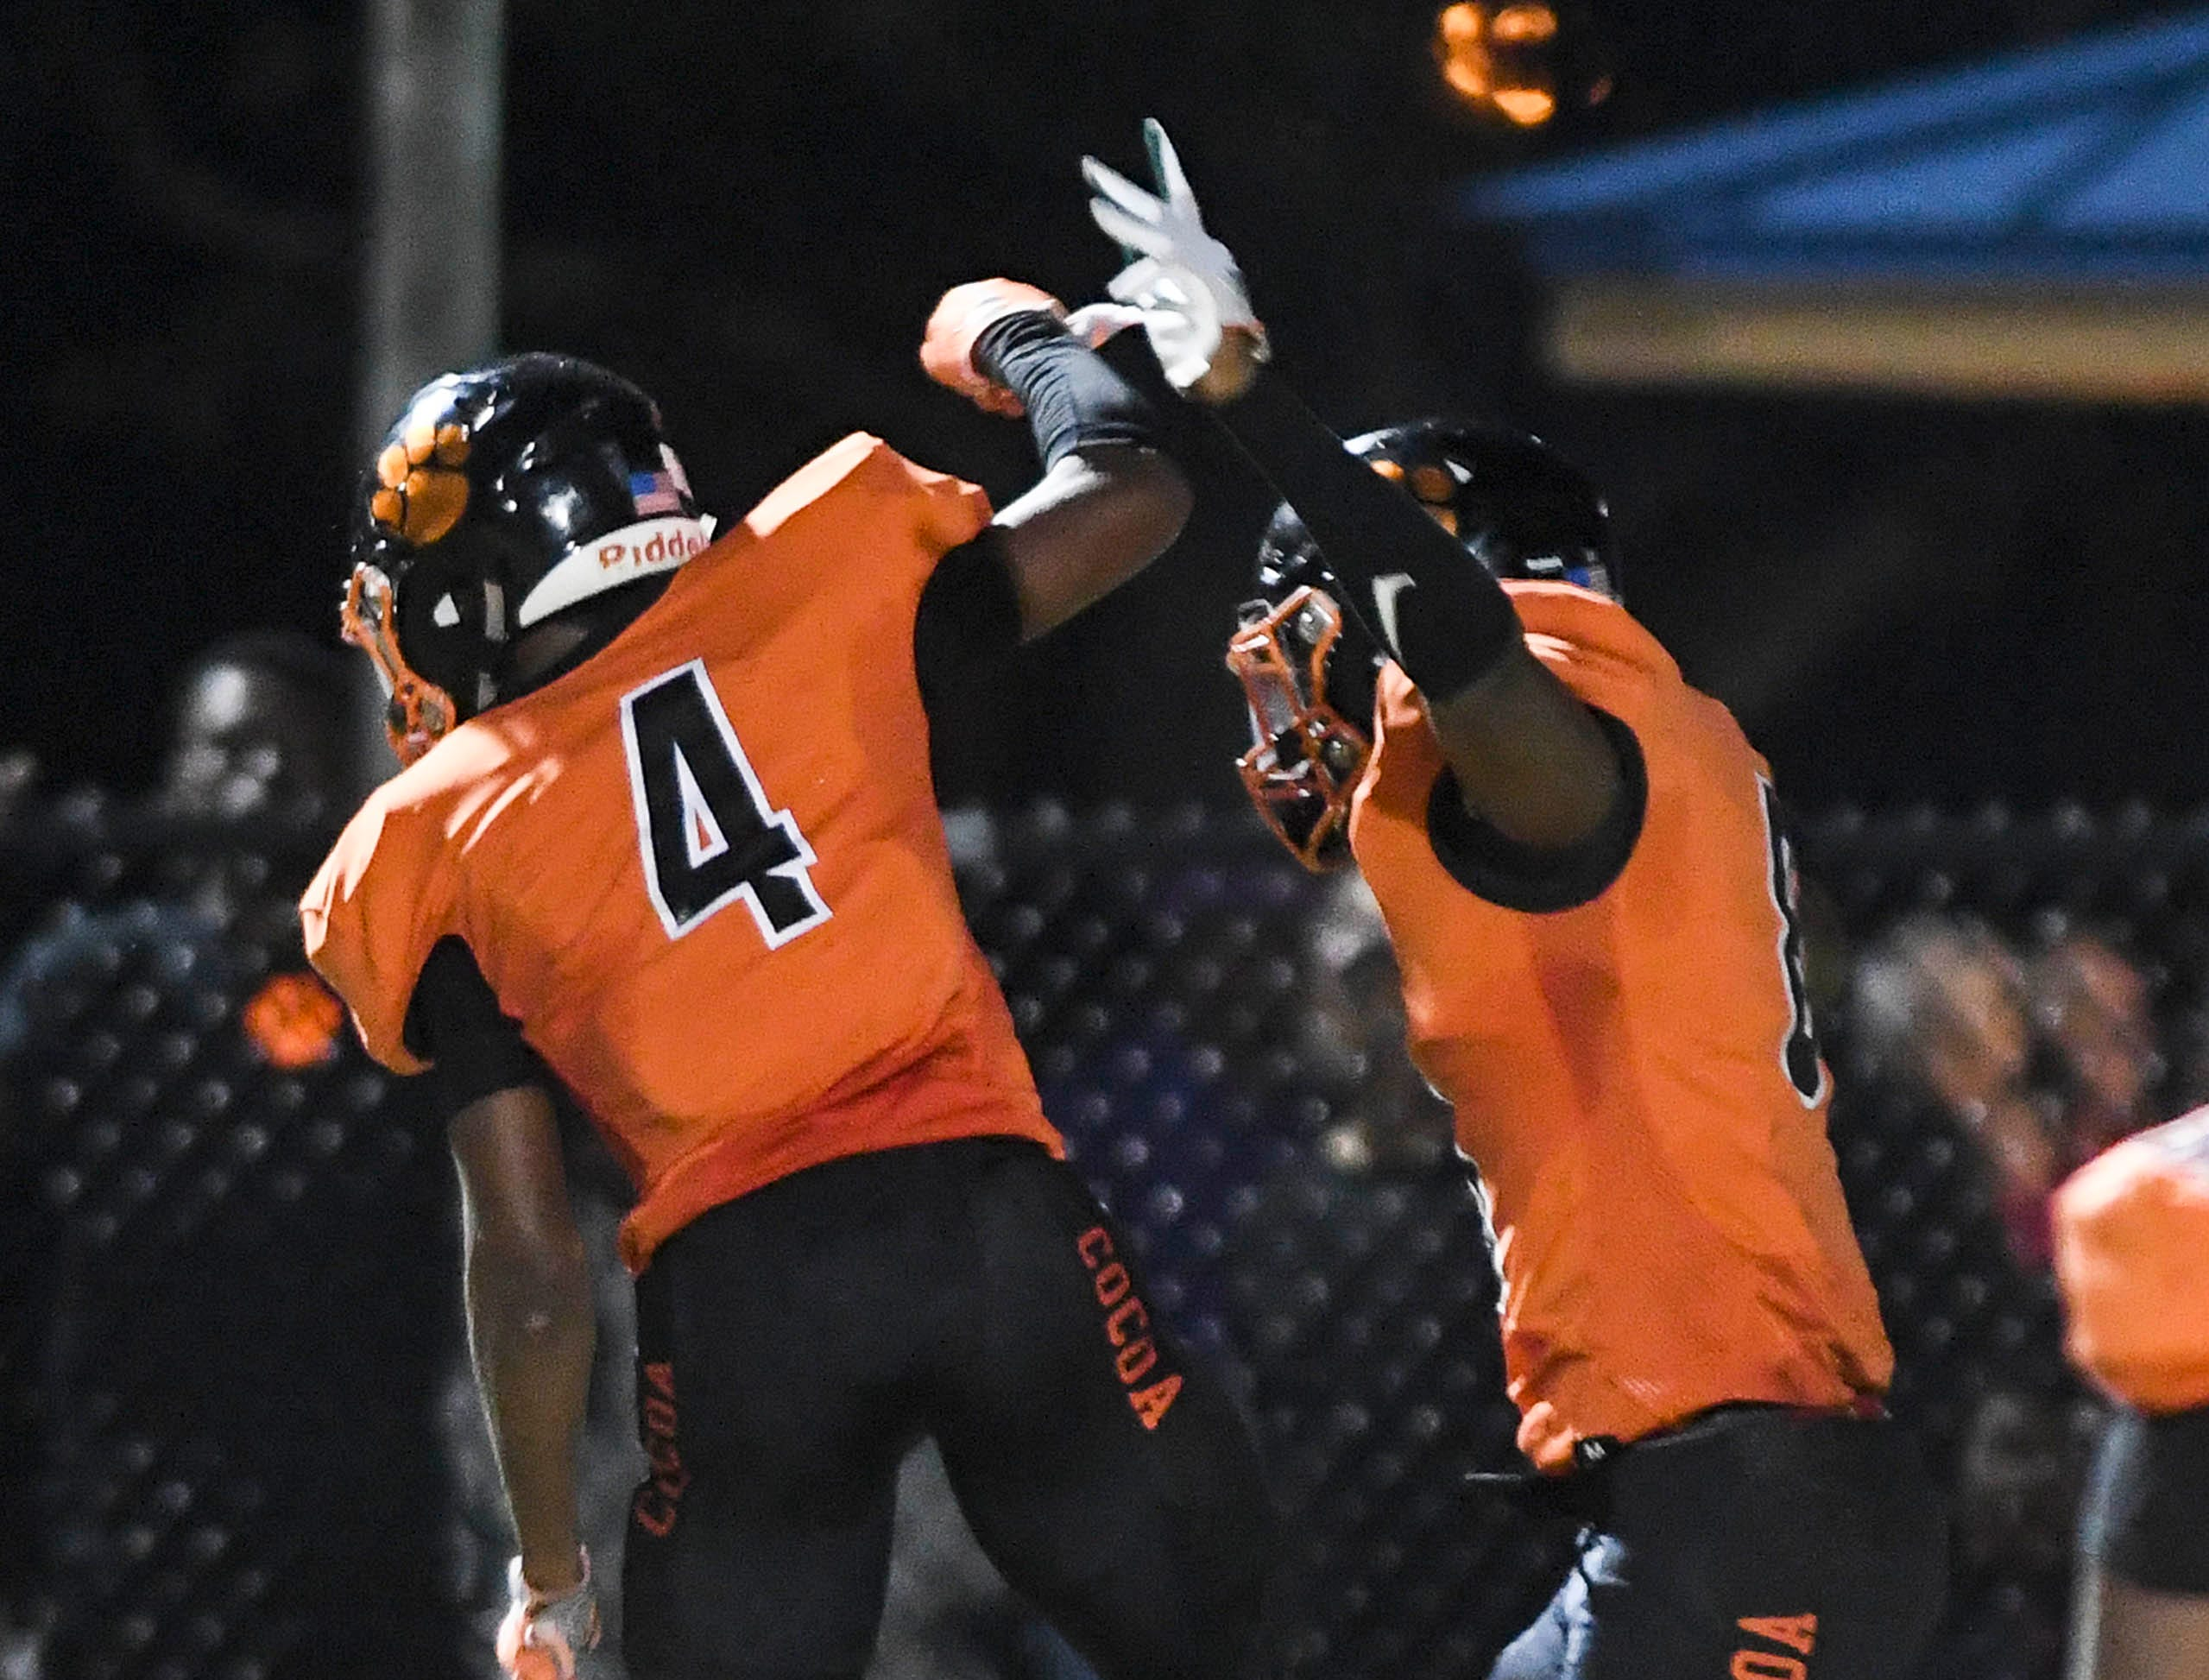 WIllie Gaines and Caziah Holmes of Cocoa celebrate a touchdown during Friday's game at Blake Stadium.